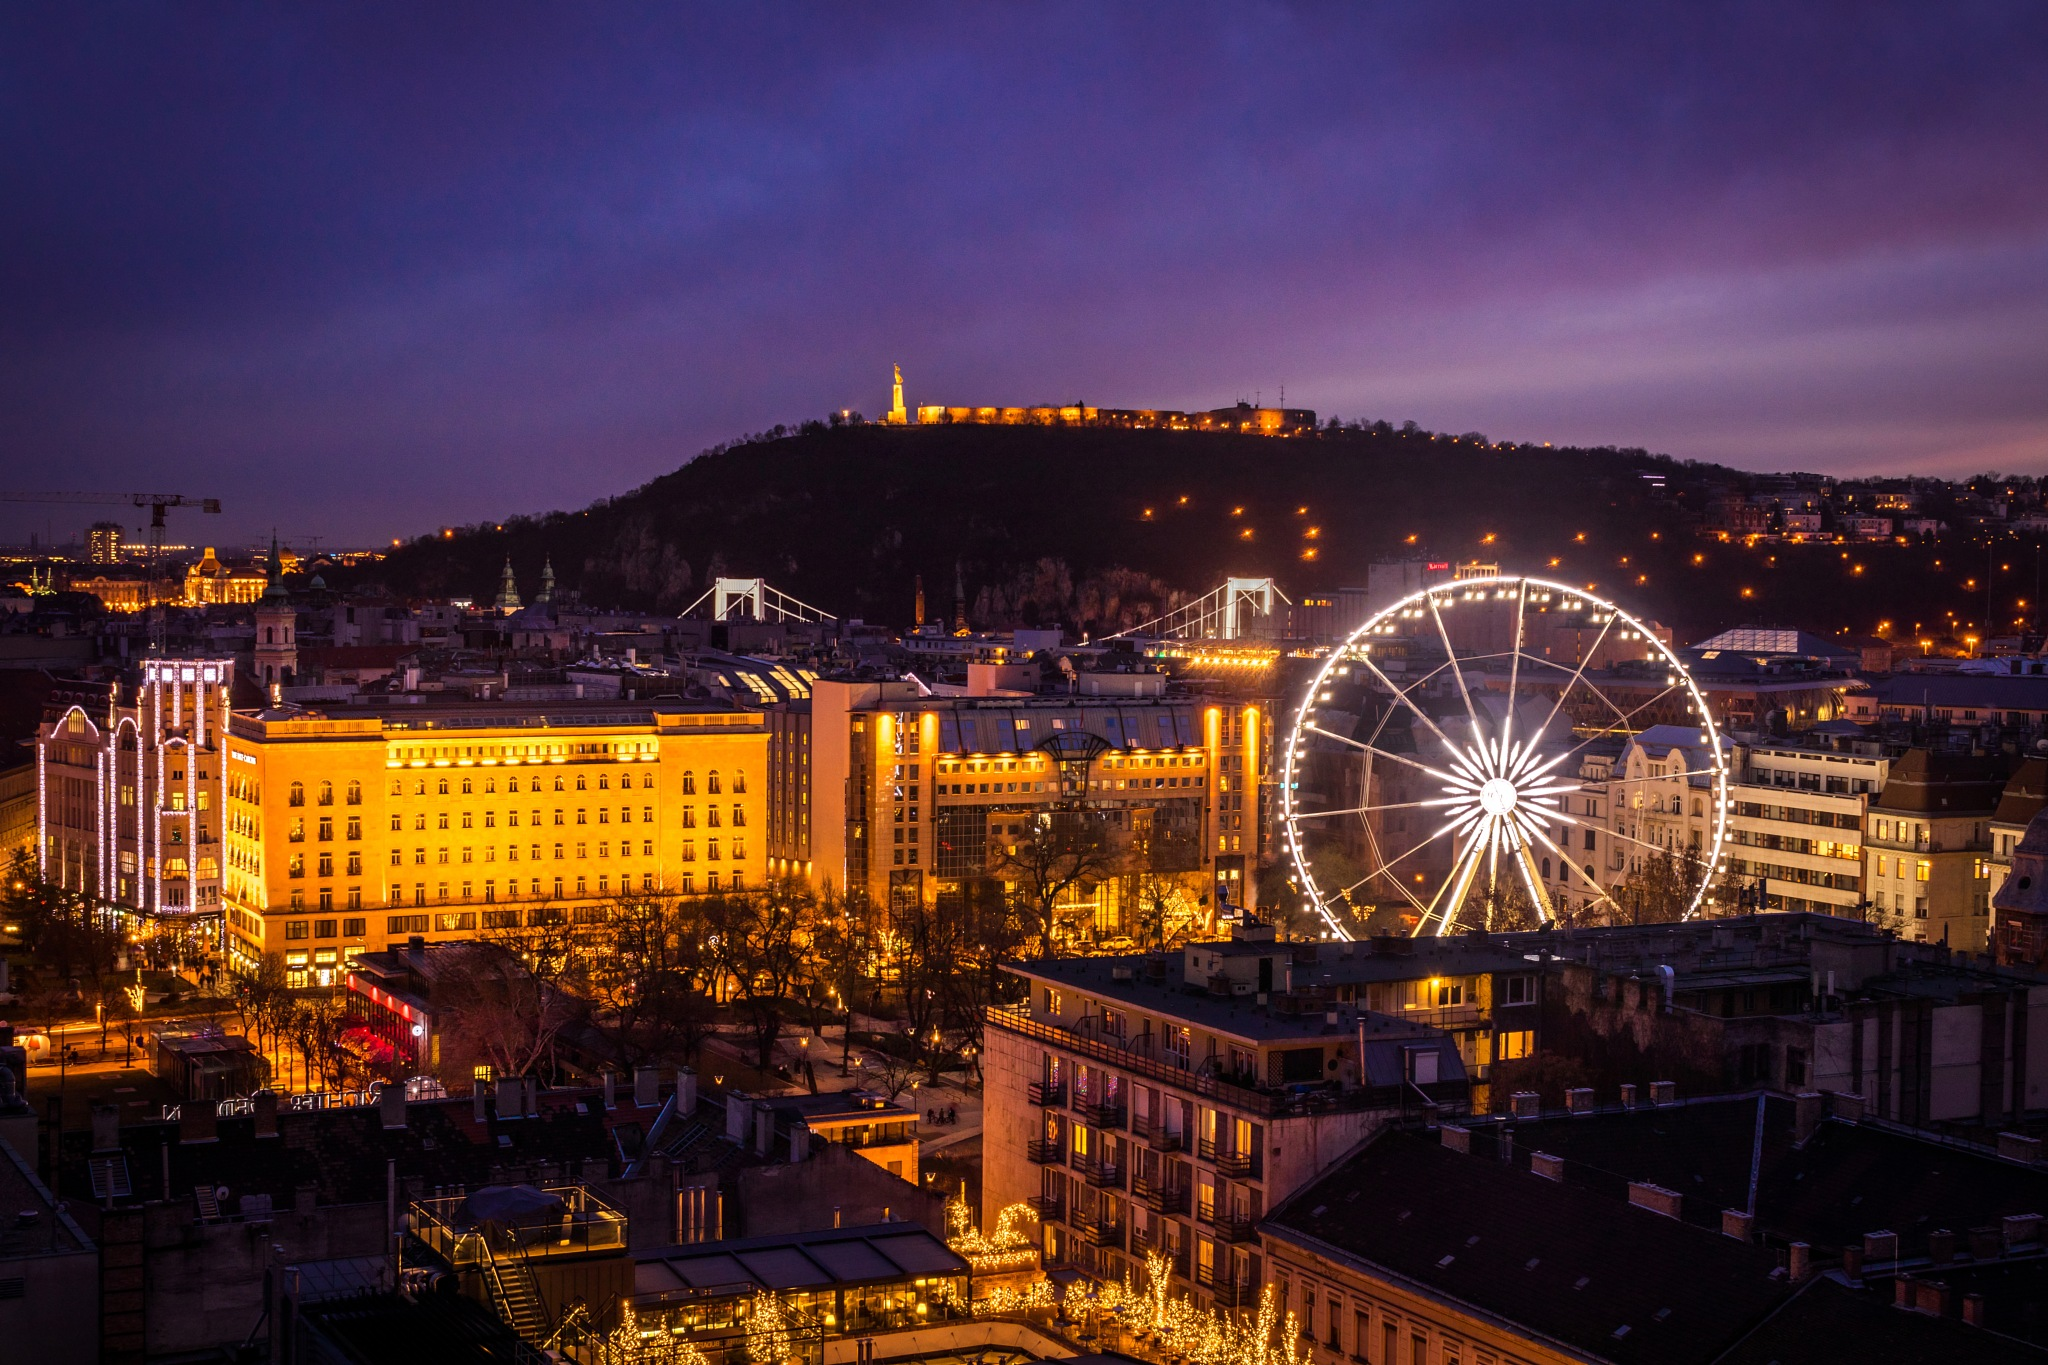 Purple sunset over Budapest by Áron Felszeghy